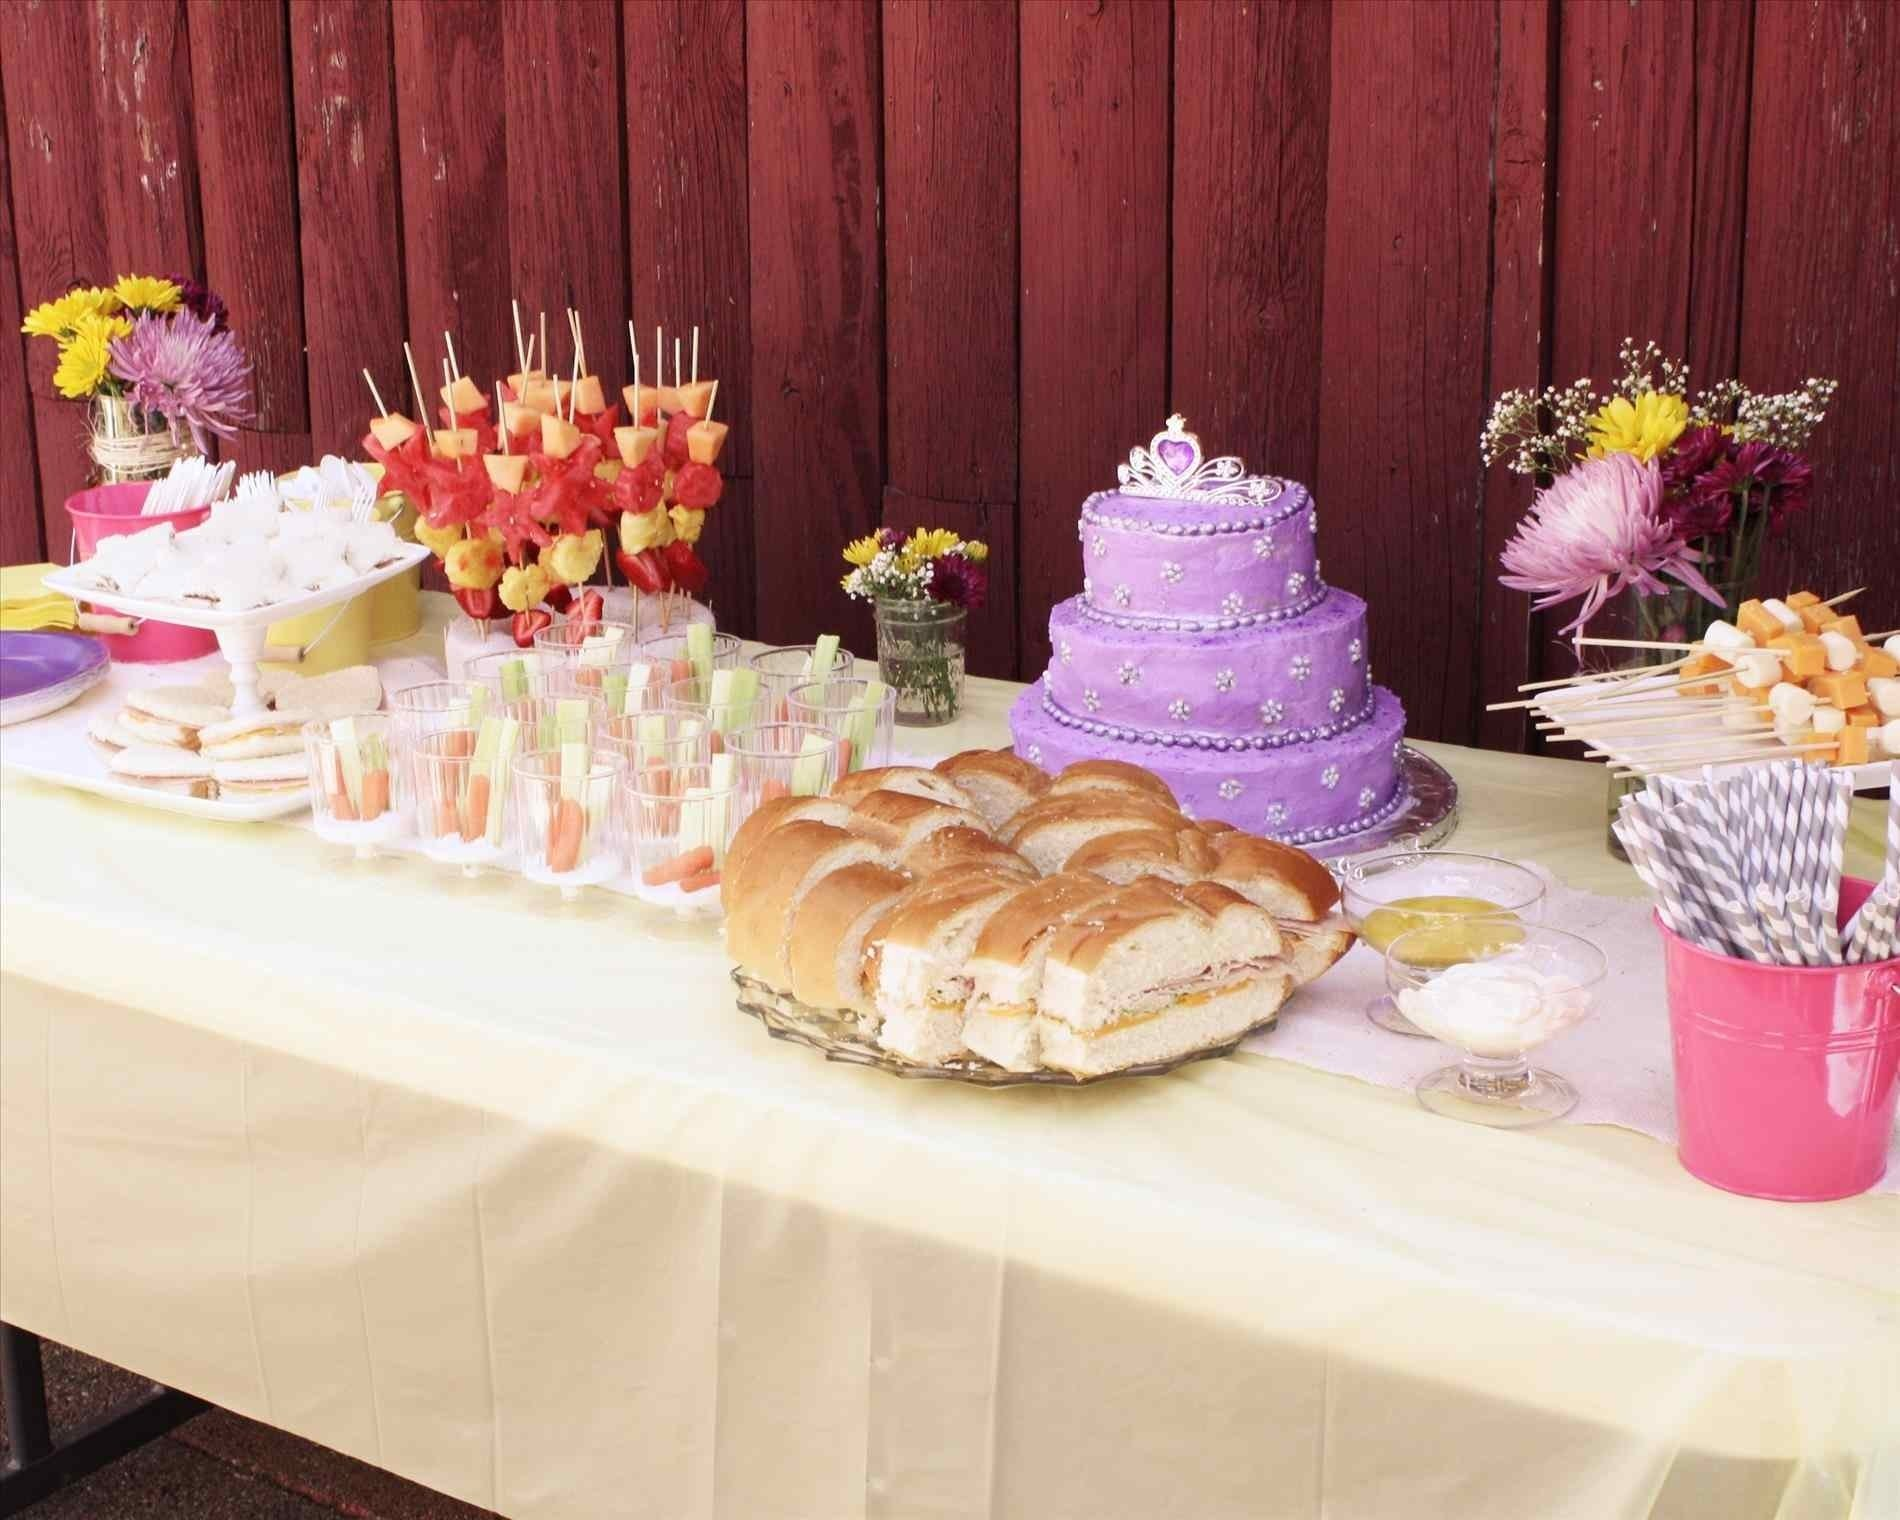 10 Nice Princess Tea Party Food Ideas to throw a kids parenting very magical princess a tea party food